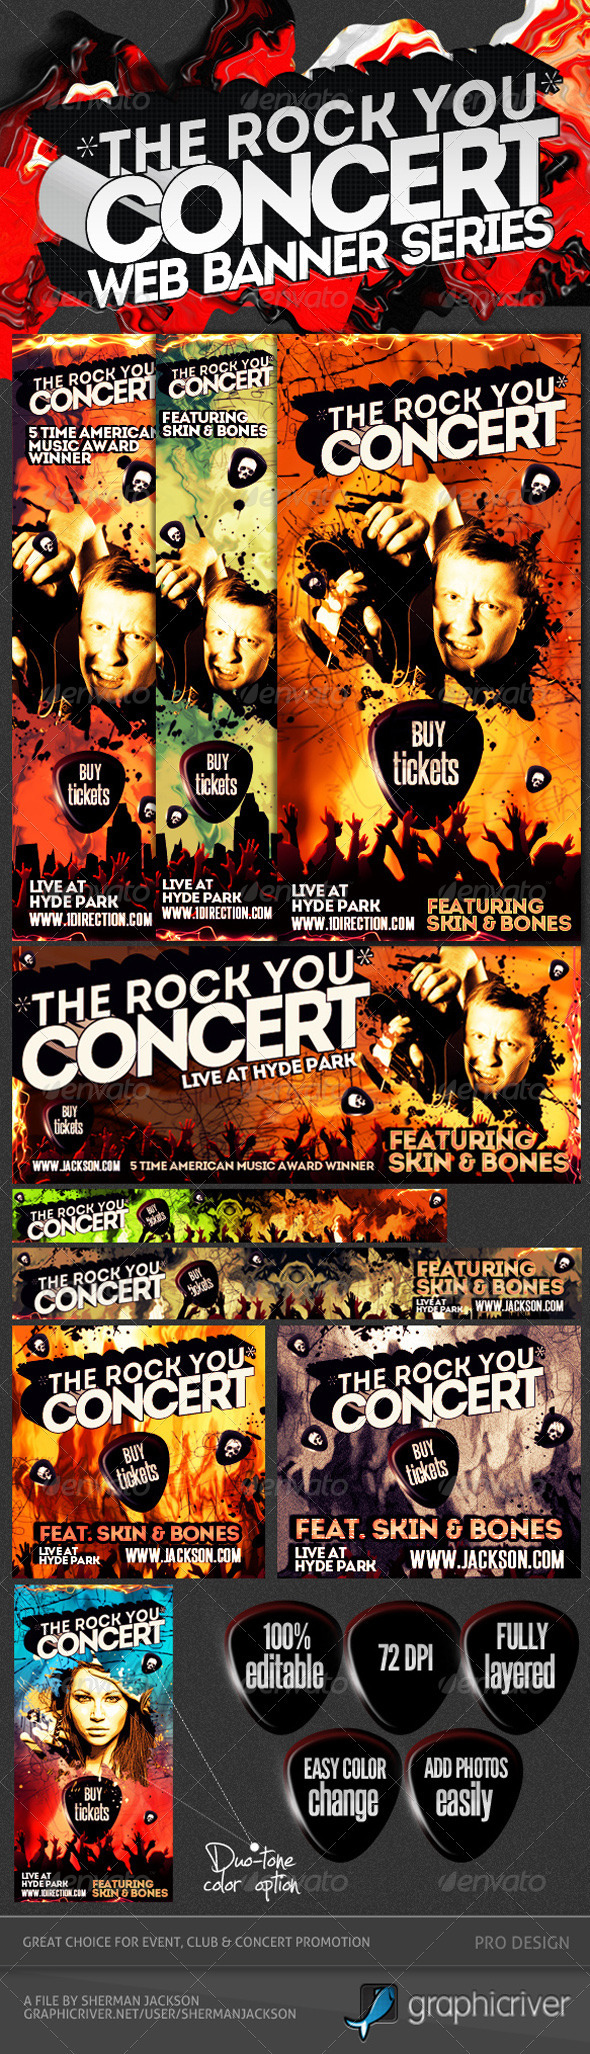 Concert & Event Web Banners & AD Kit PSD - 2 - Banners & Ads Web Elements